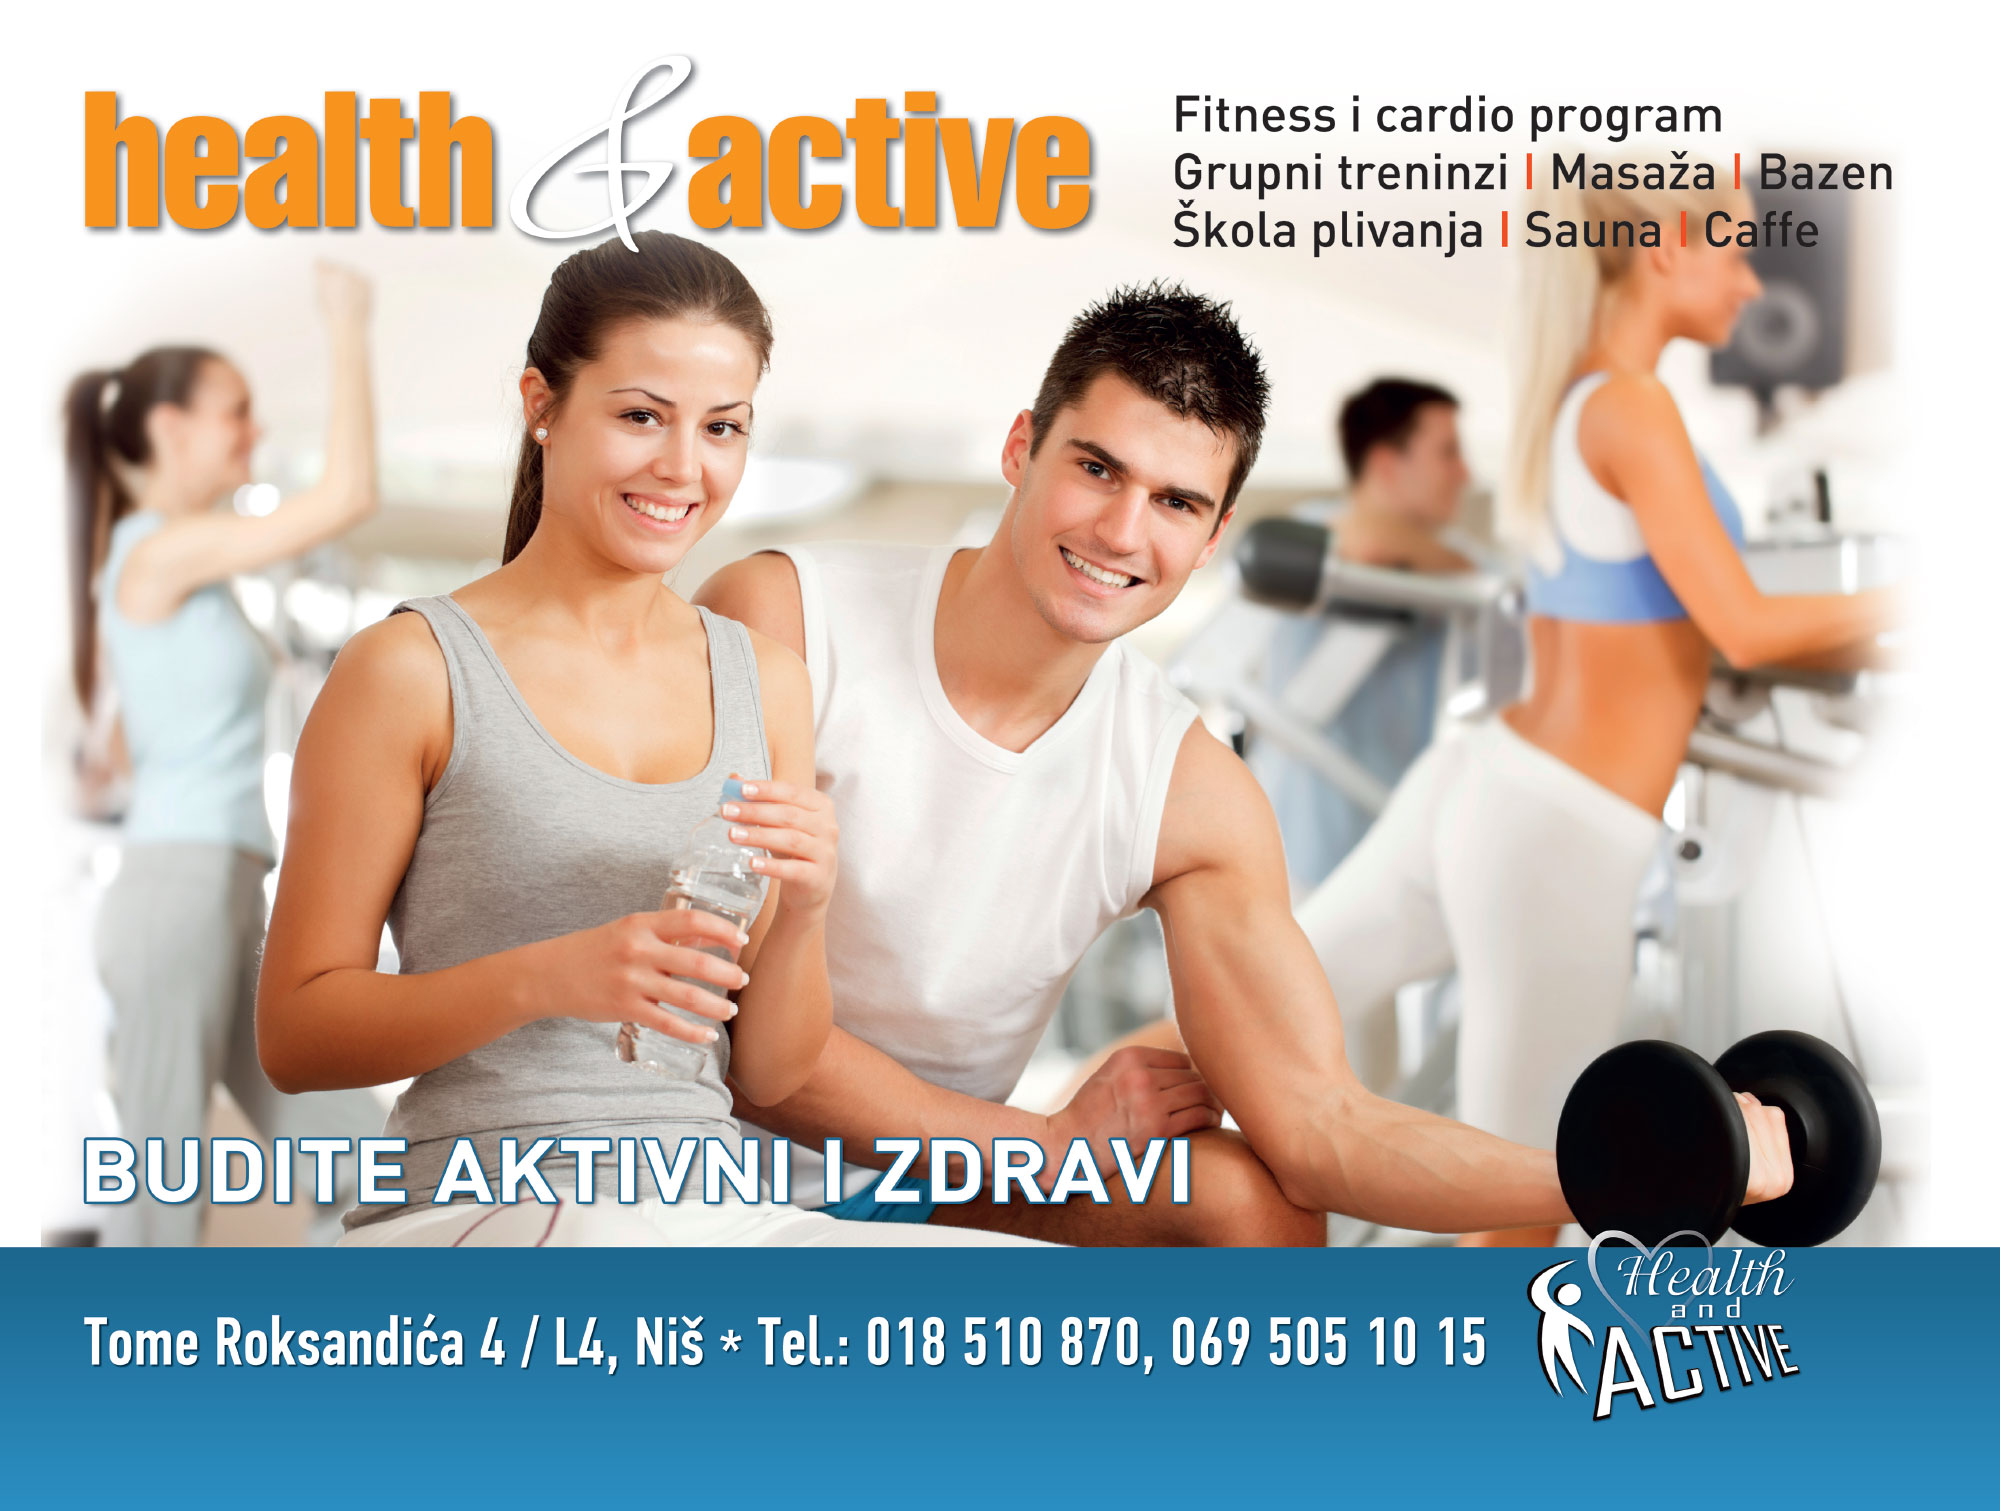 health & active poster 1